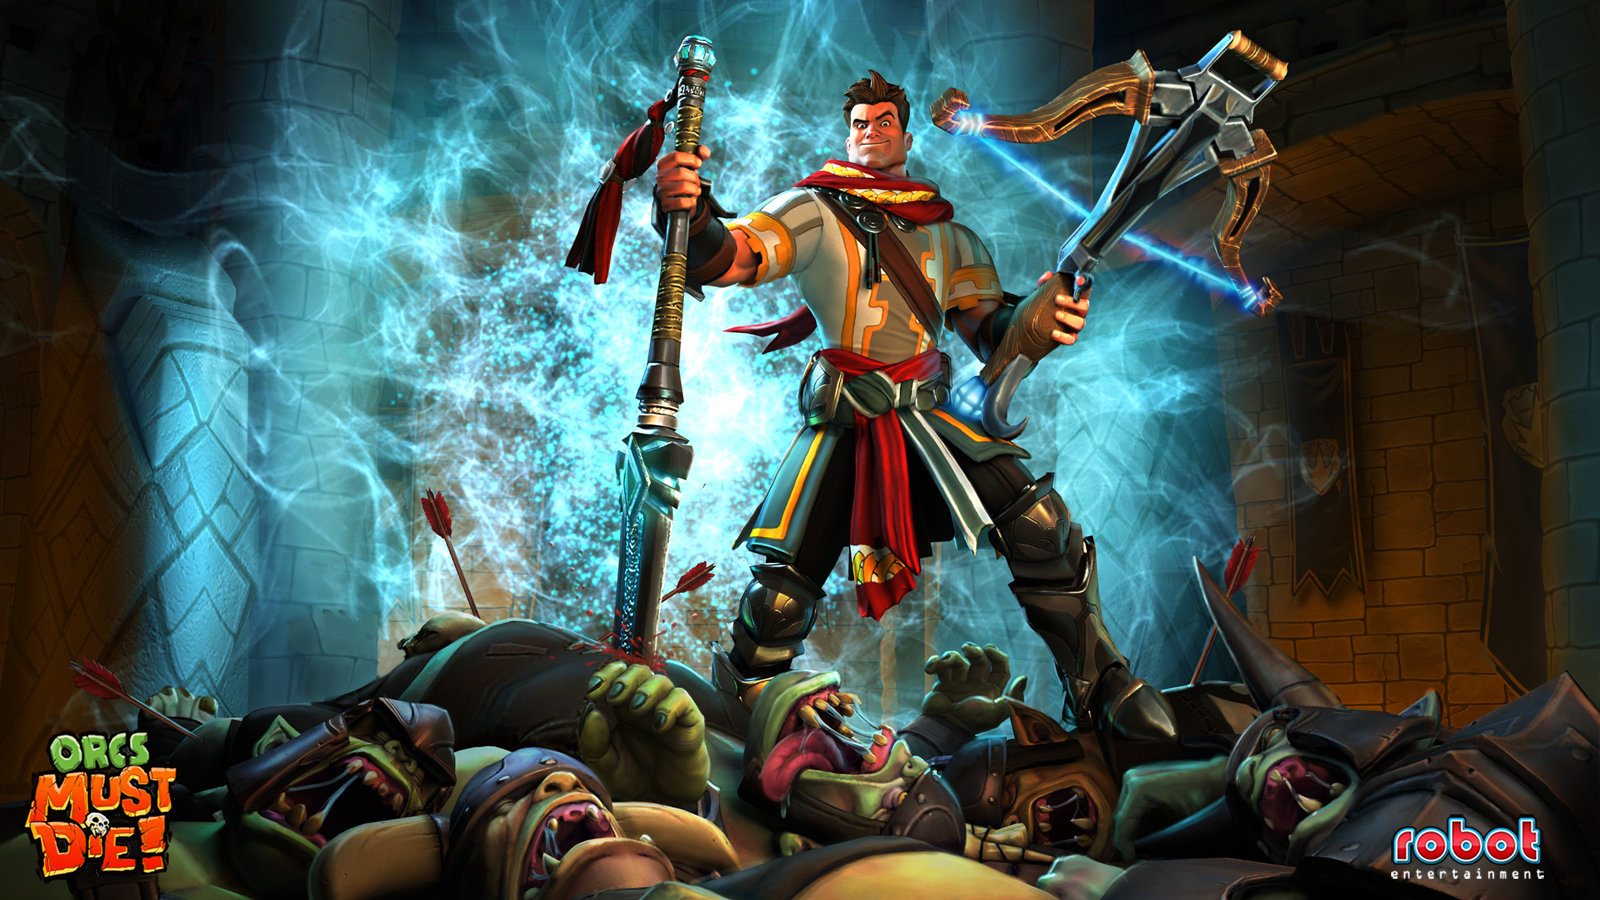 Orcs Must Die! set to slaughter XBLA October 5